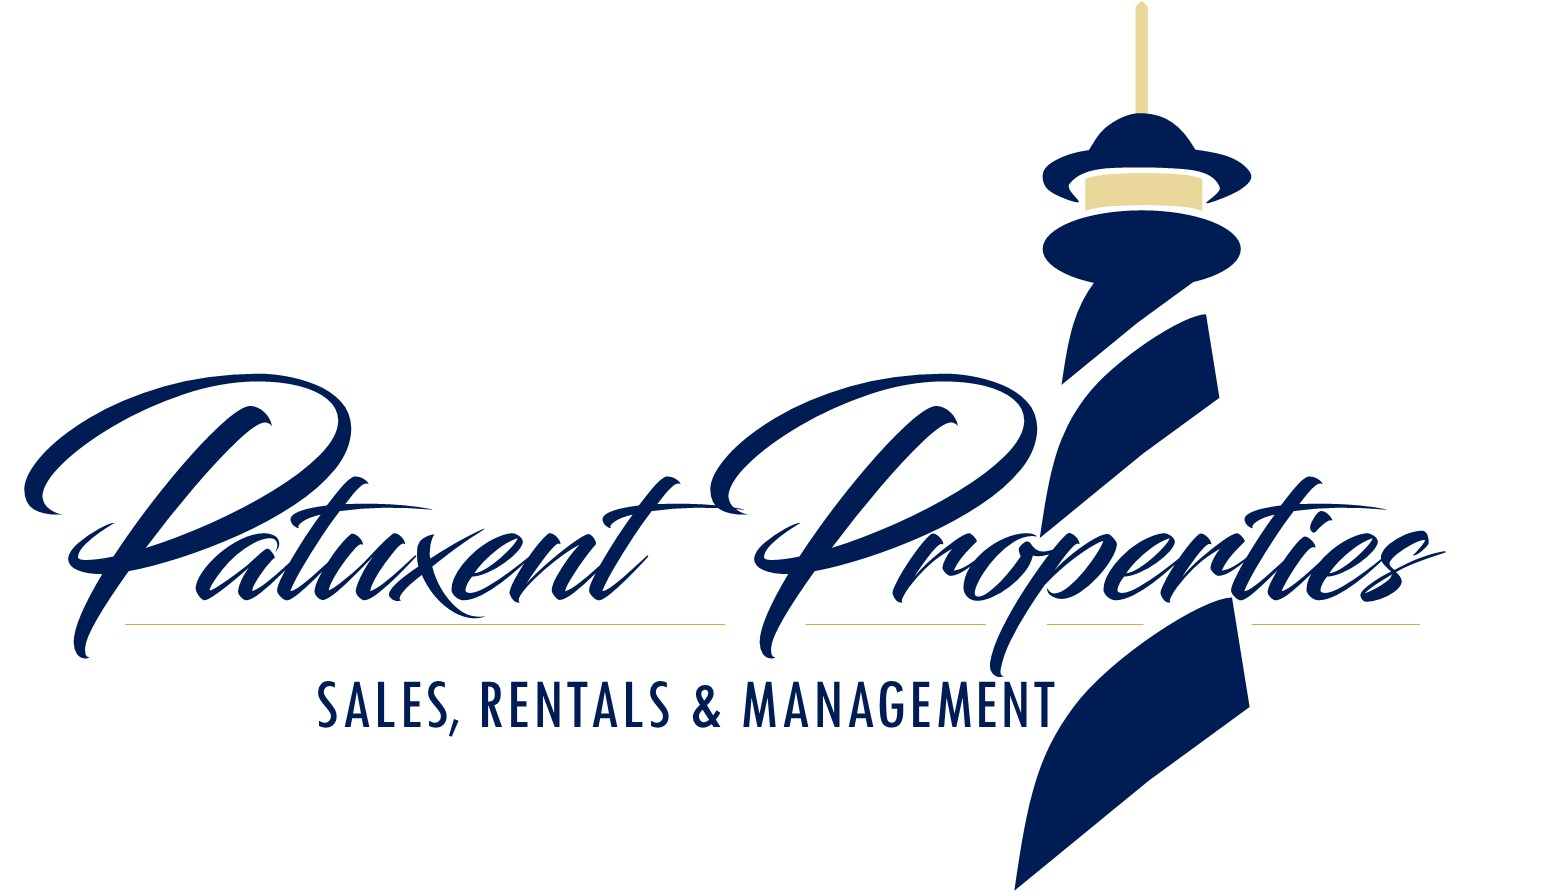 Southern Maryland Real Estate, Rentals, and Property Management